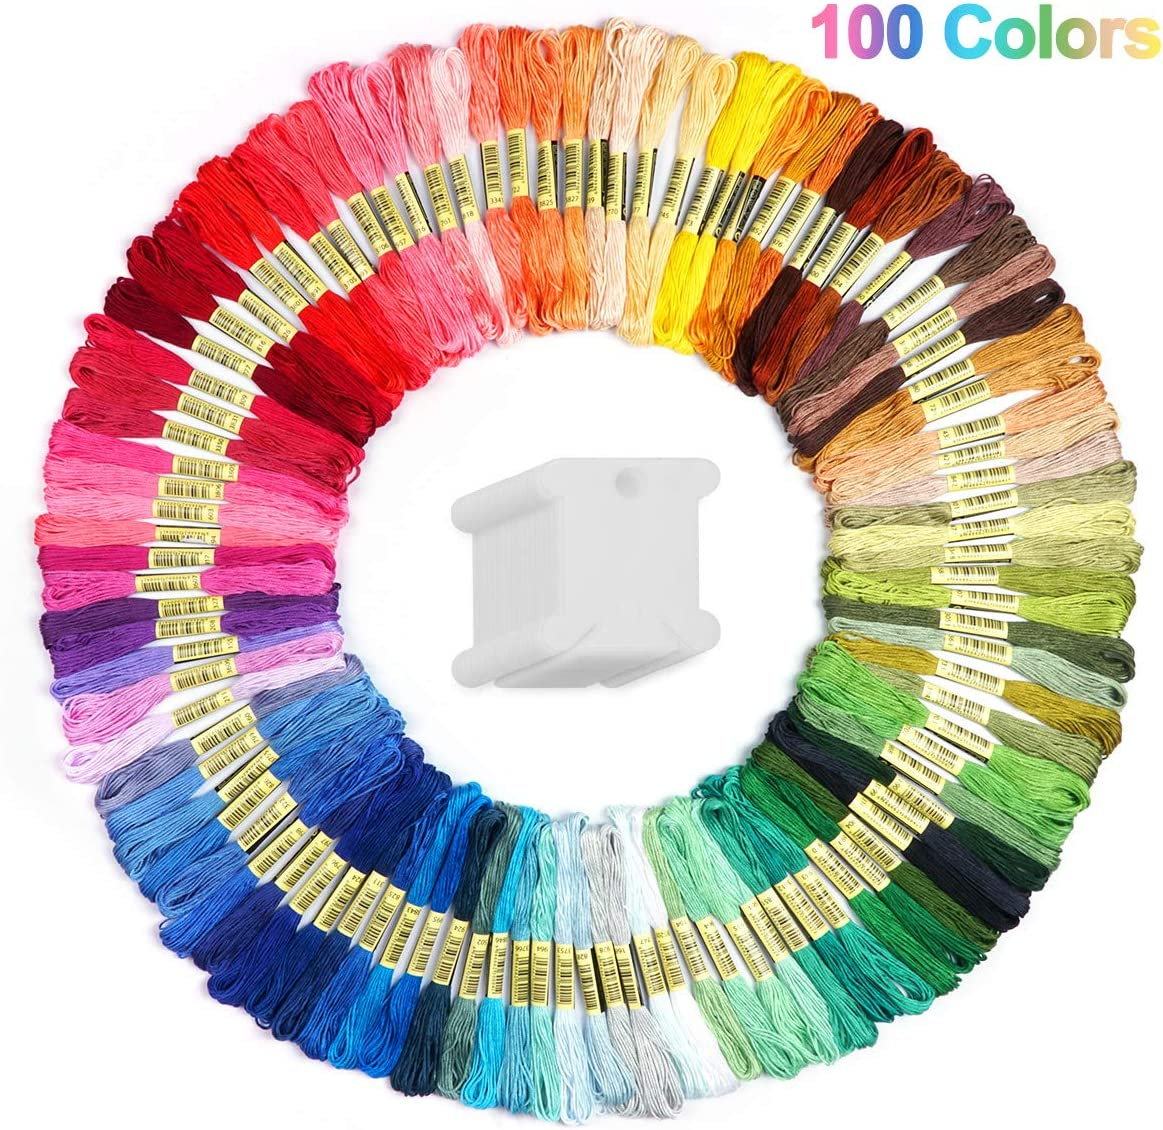 Cuttte 100 Colors Embroidery Floss with 20 Pieces Floss Bobbins, Numbered Embroidery Thread Friendship Bracelets Strings Embroidery Strings for Arts and Crafts